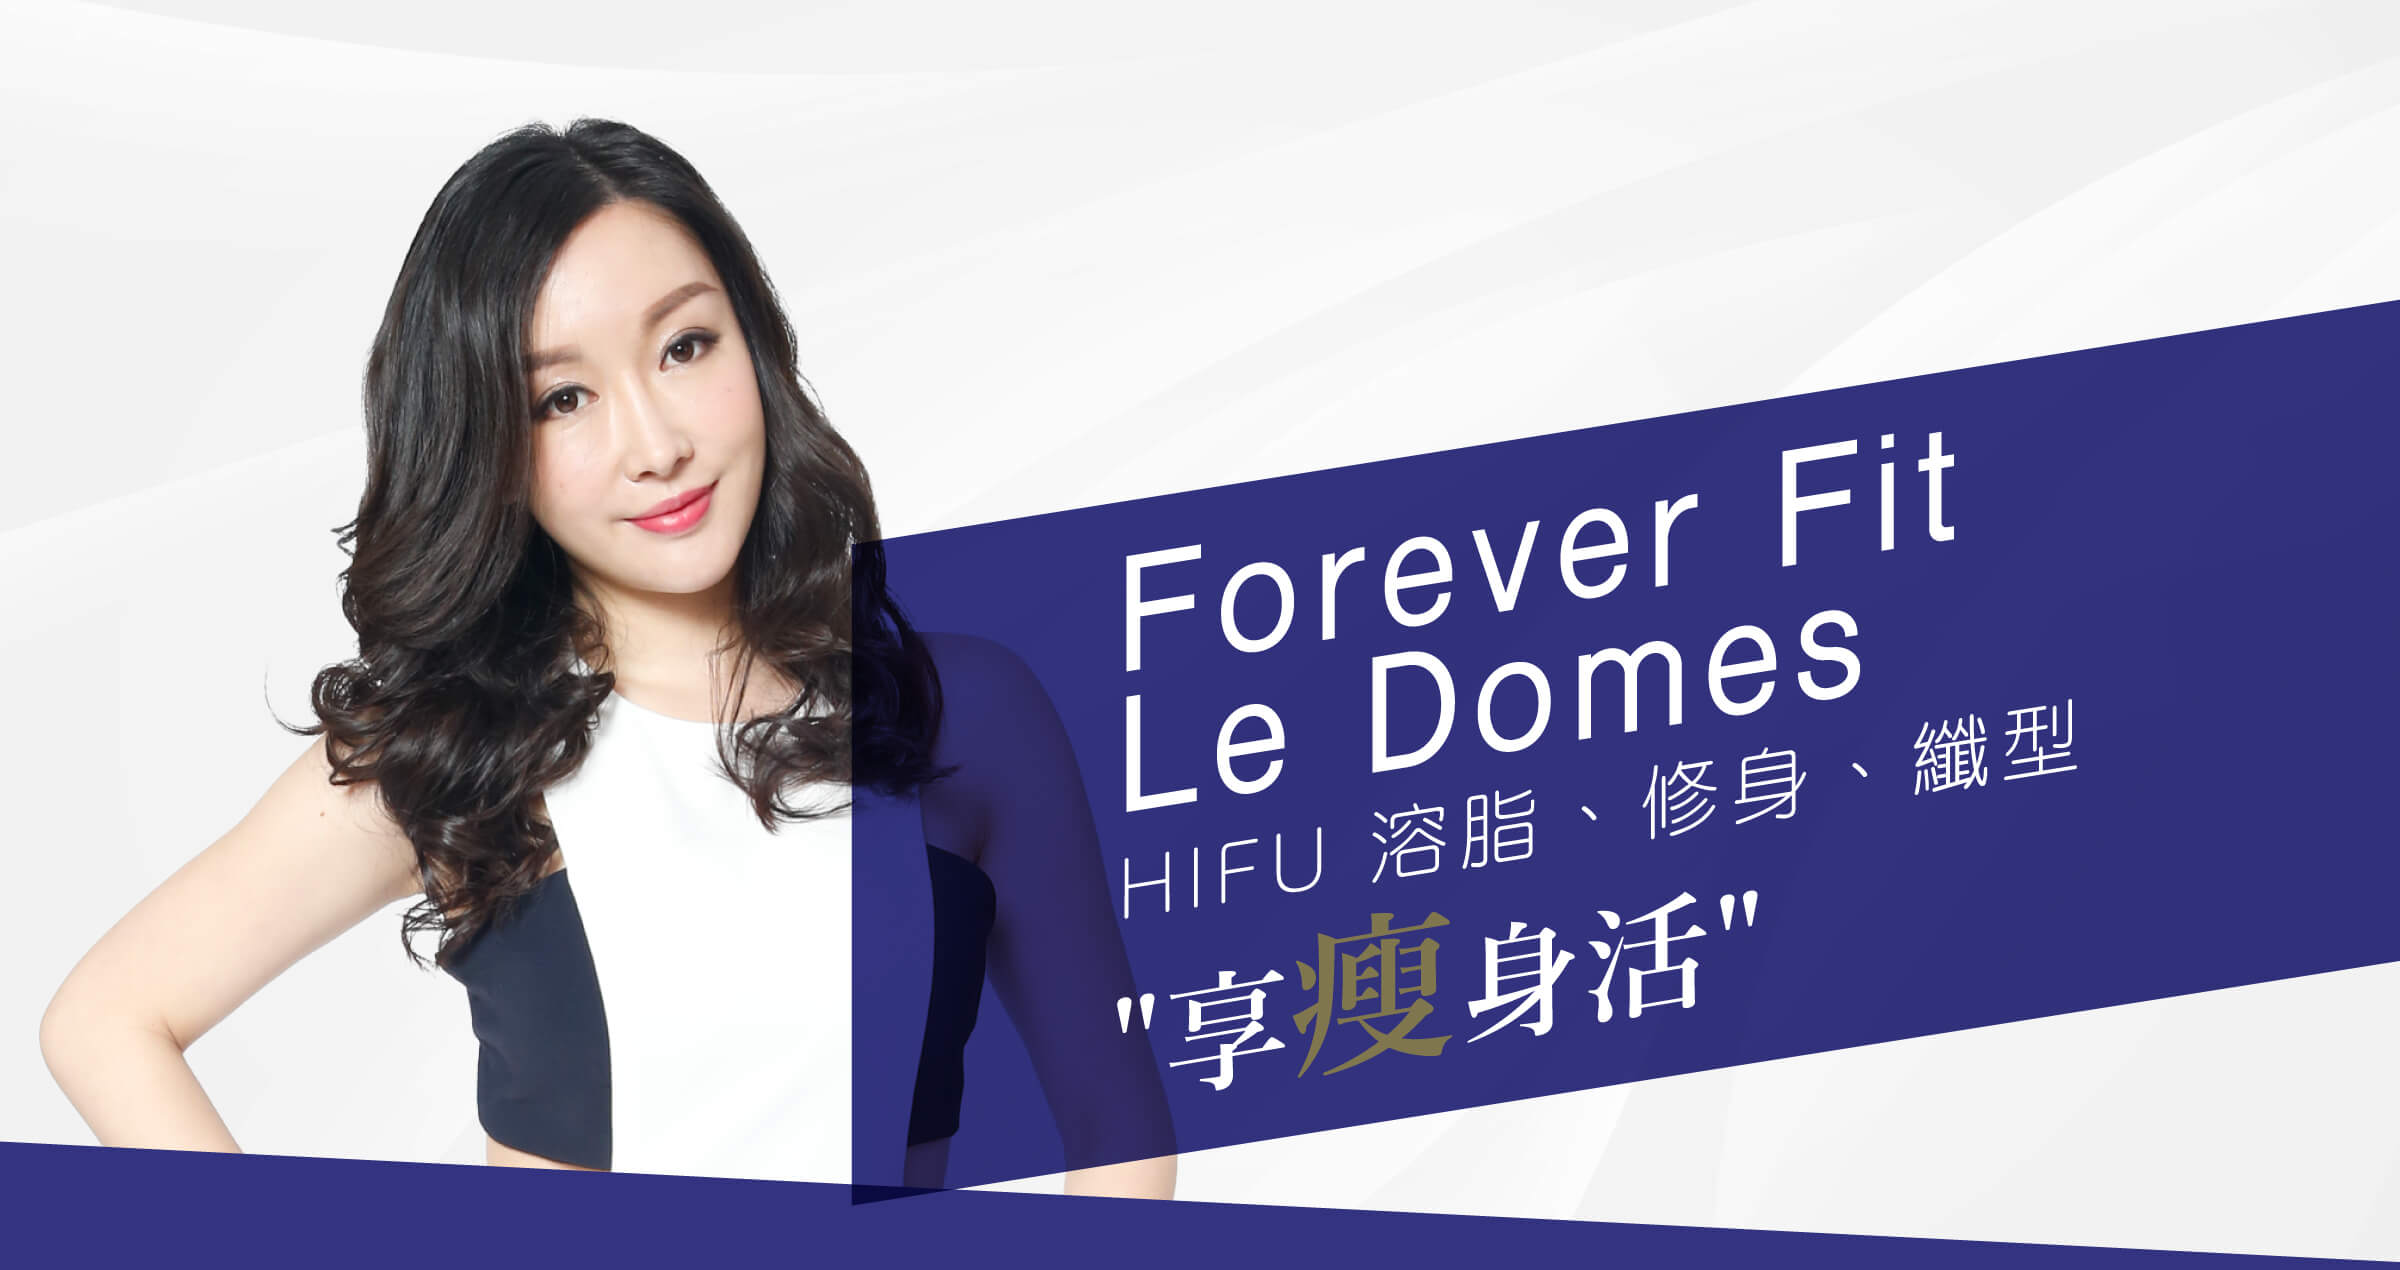 Forever Fit Le Domes HIFU溶脂 修身 纖型